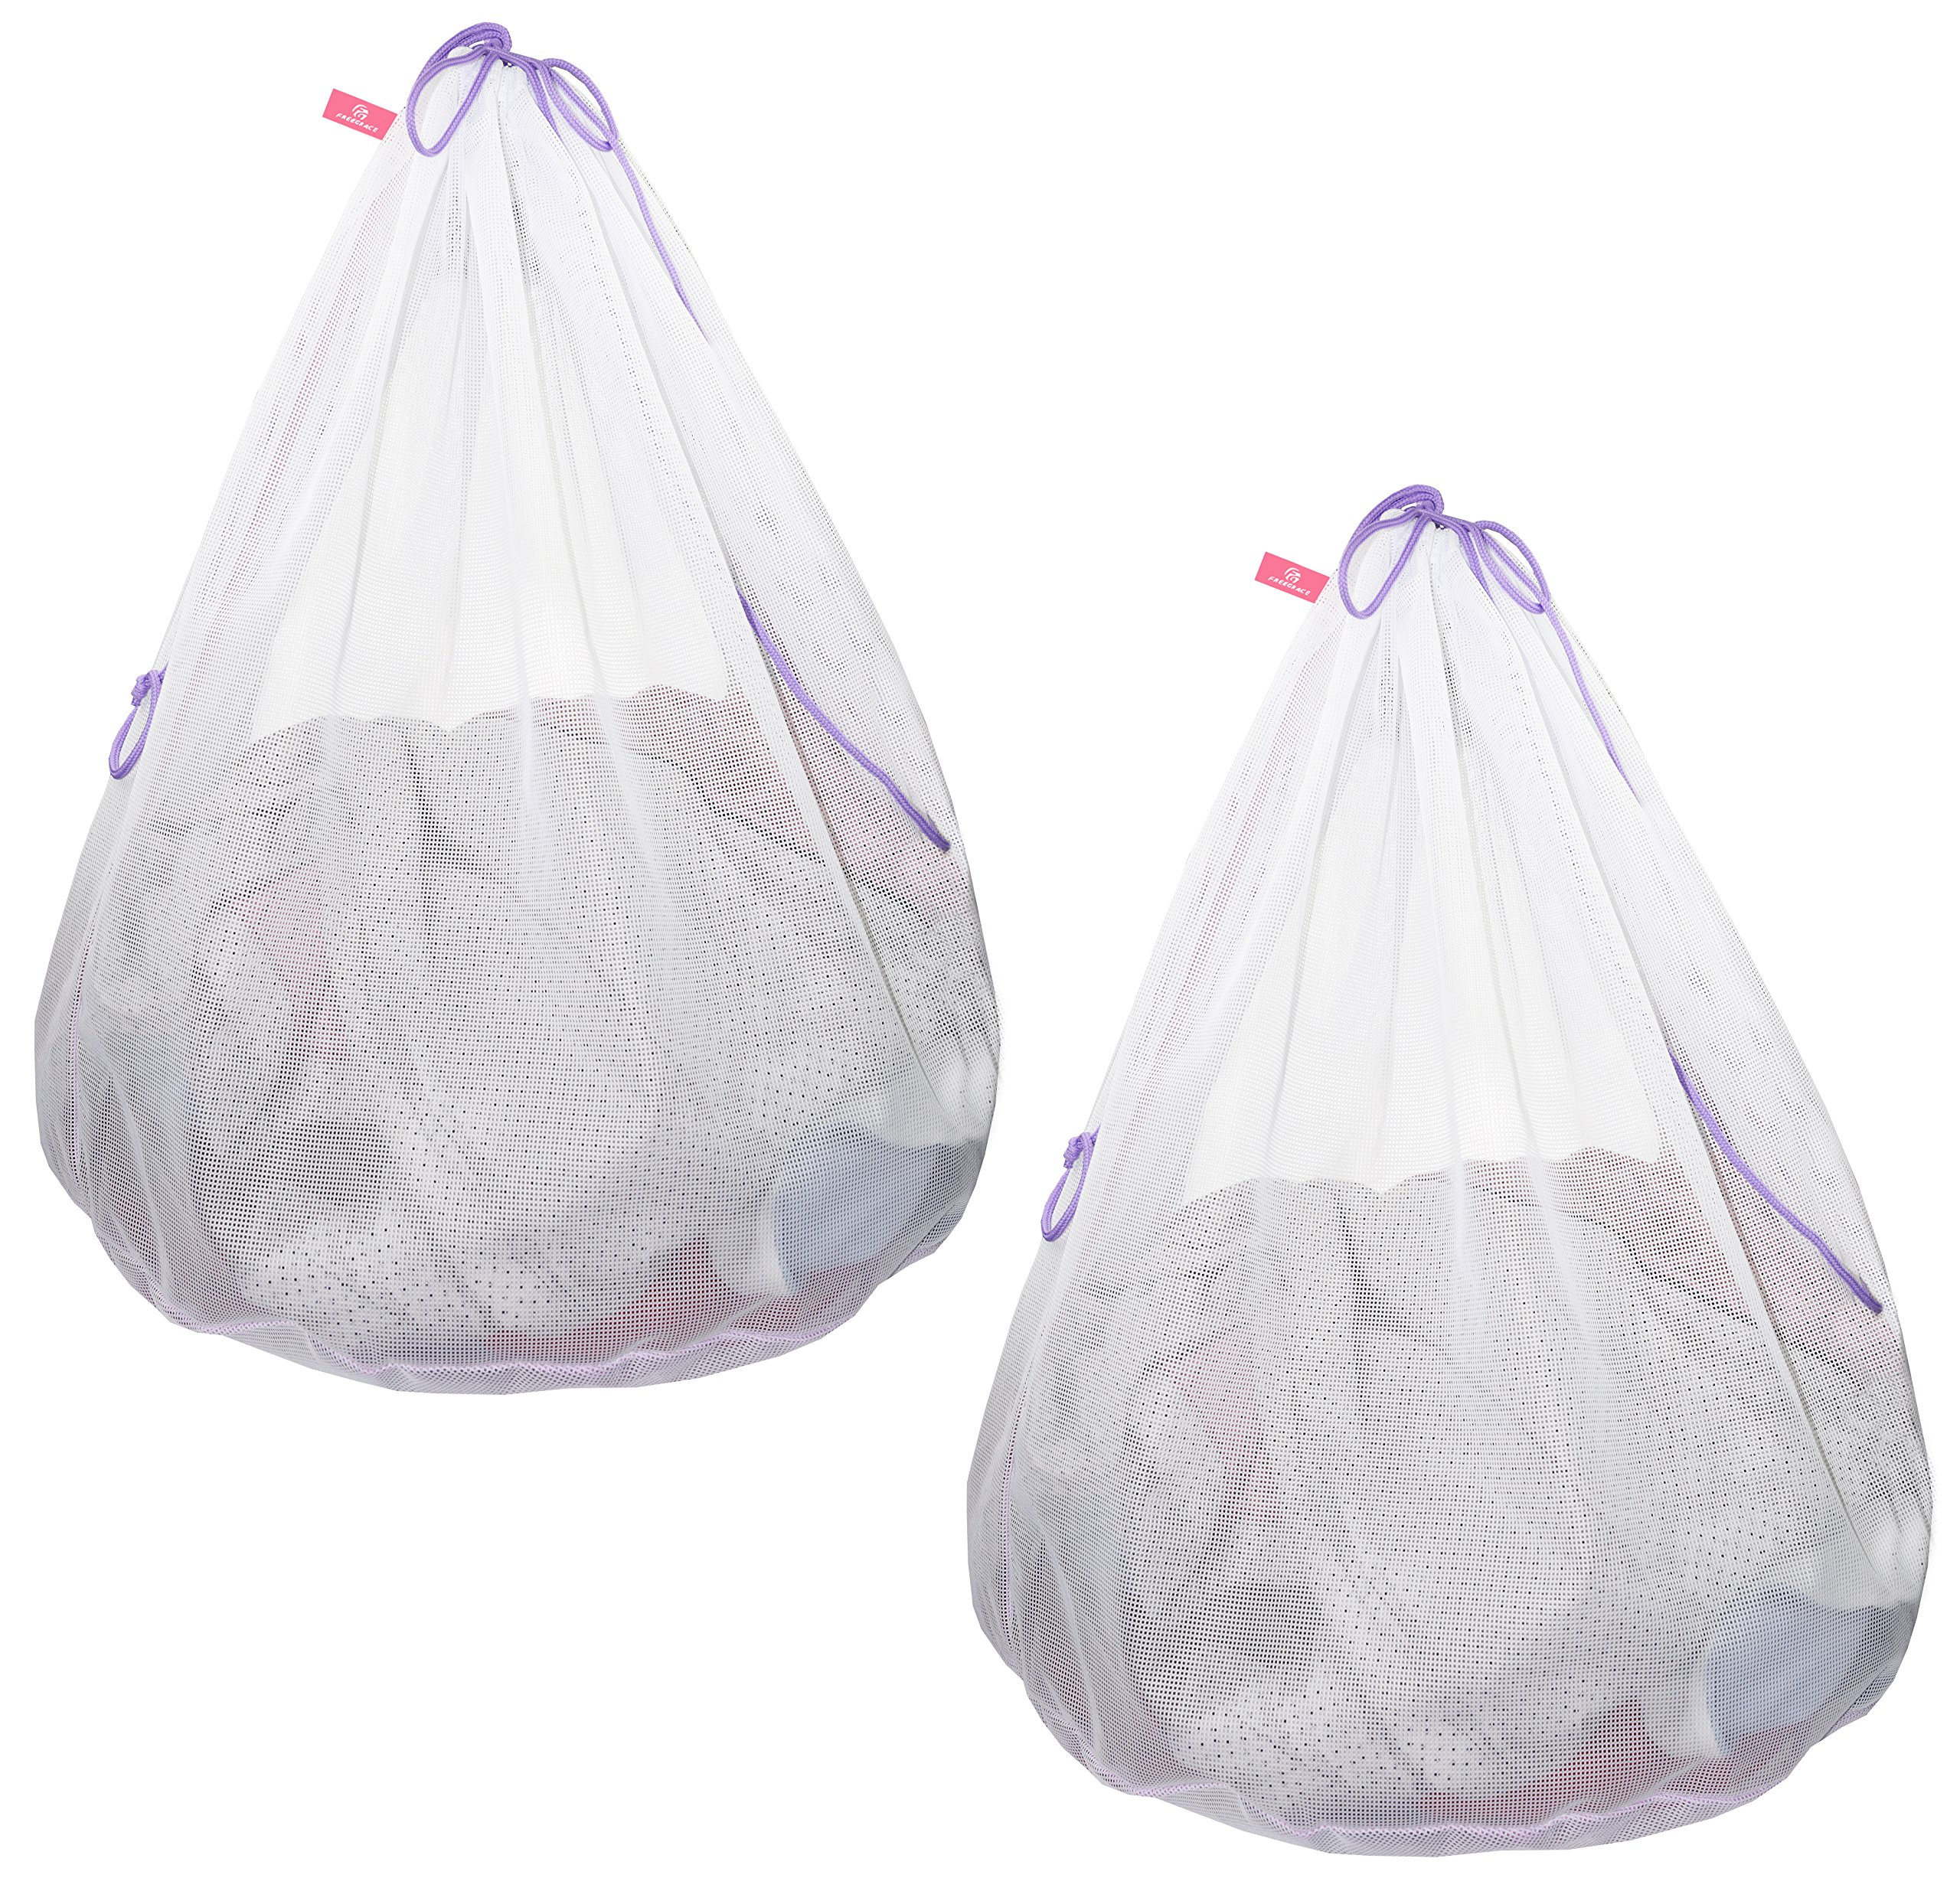 Premium Quality Laundry Bag - Ultra Thick, Extra Durable & Breathable 120 g/m² Polyester-Fibre Mesh Material - Perfect For Household Use, College Dorms, Travels (Drawstring Version 2 Pack)